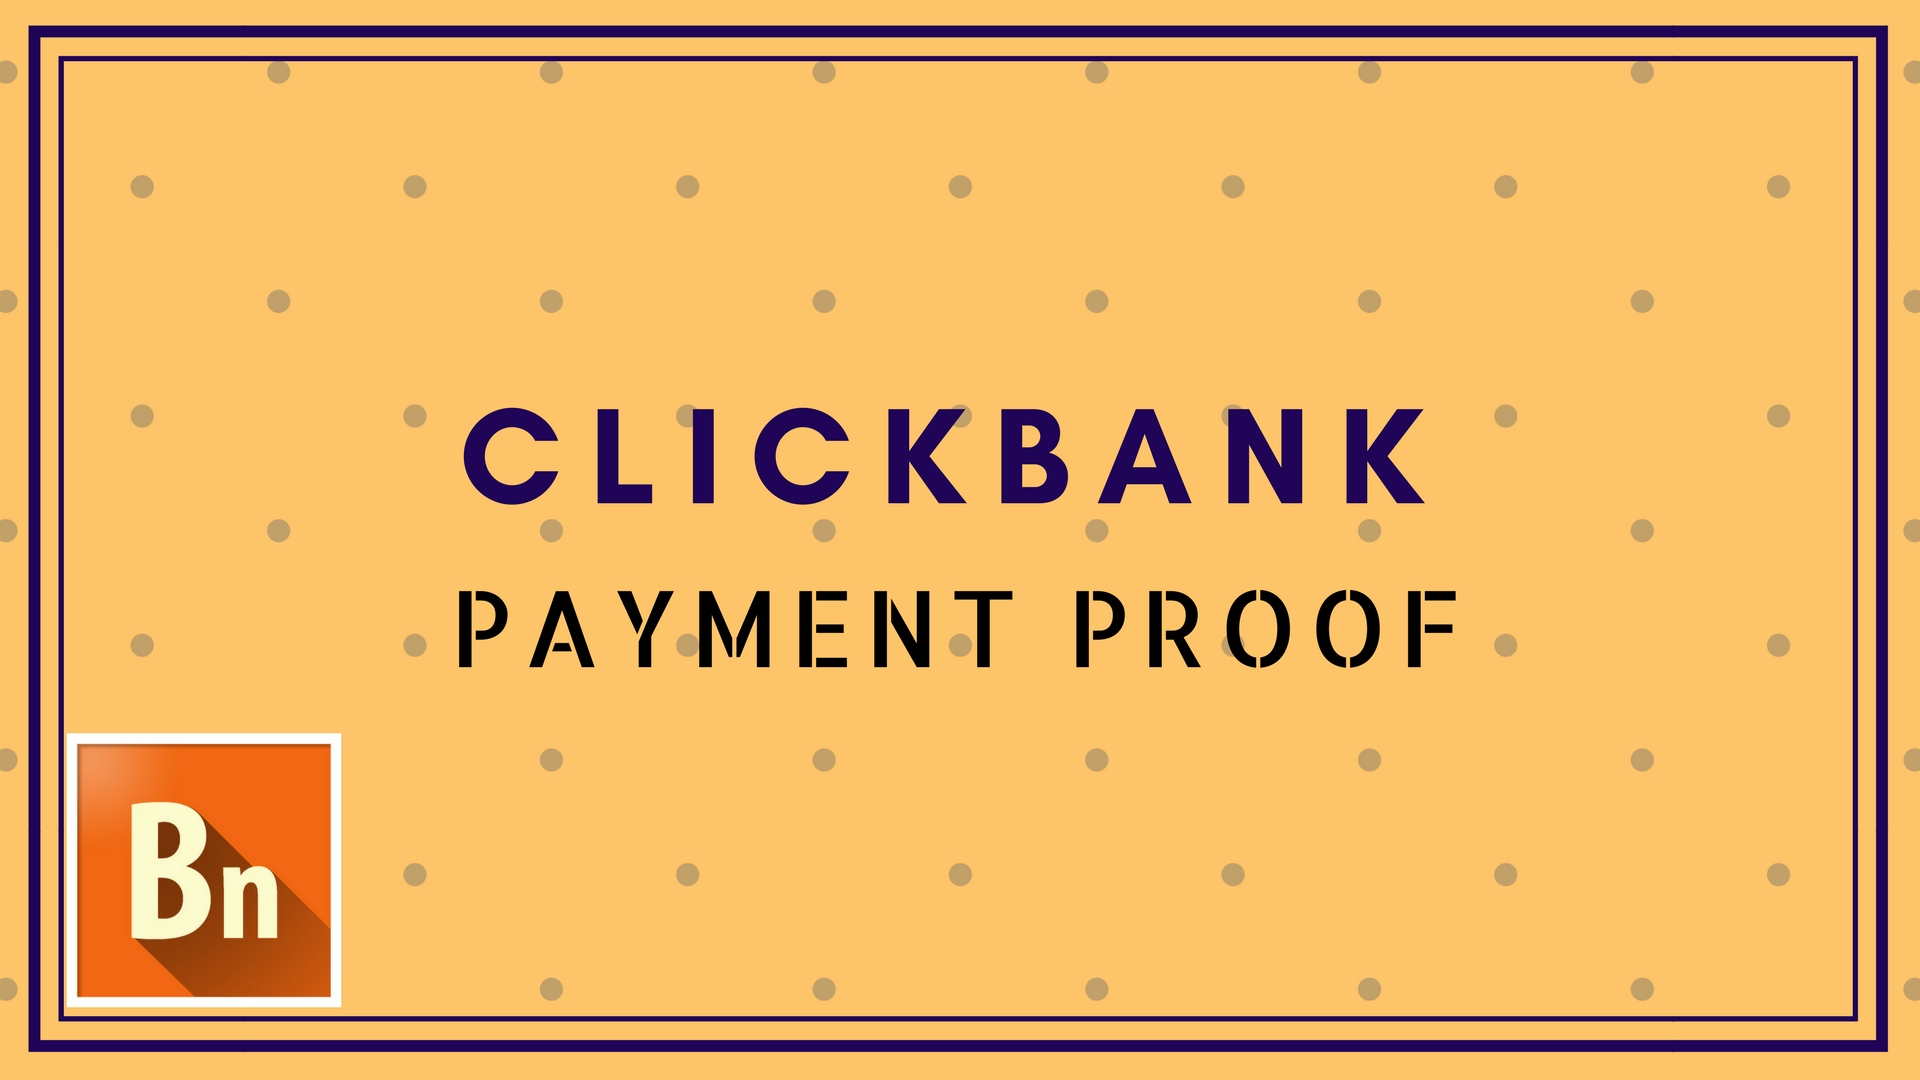 Clickbank Payment Proof for Publishers 2019